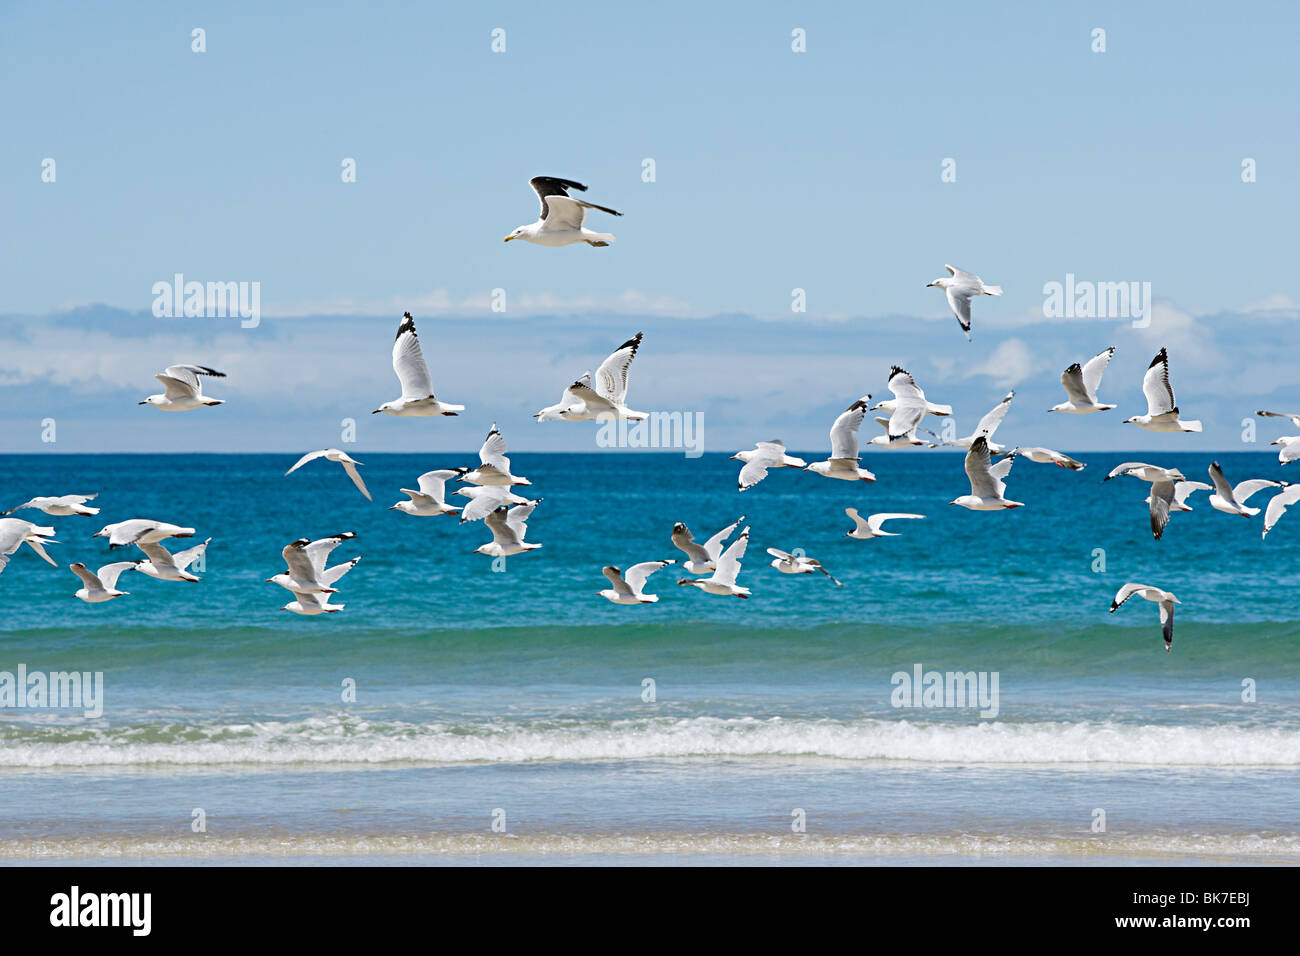 Bay of Islands, seagulls flying over sea - Stock Image